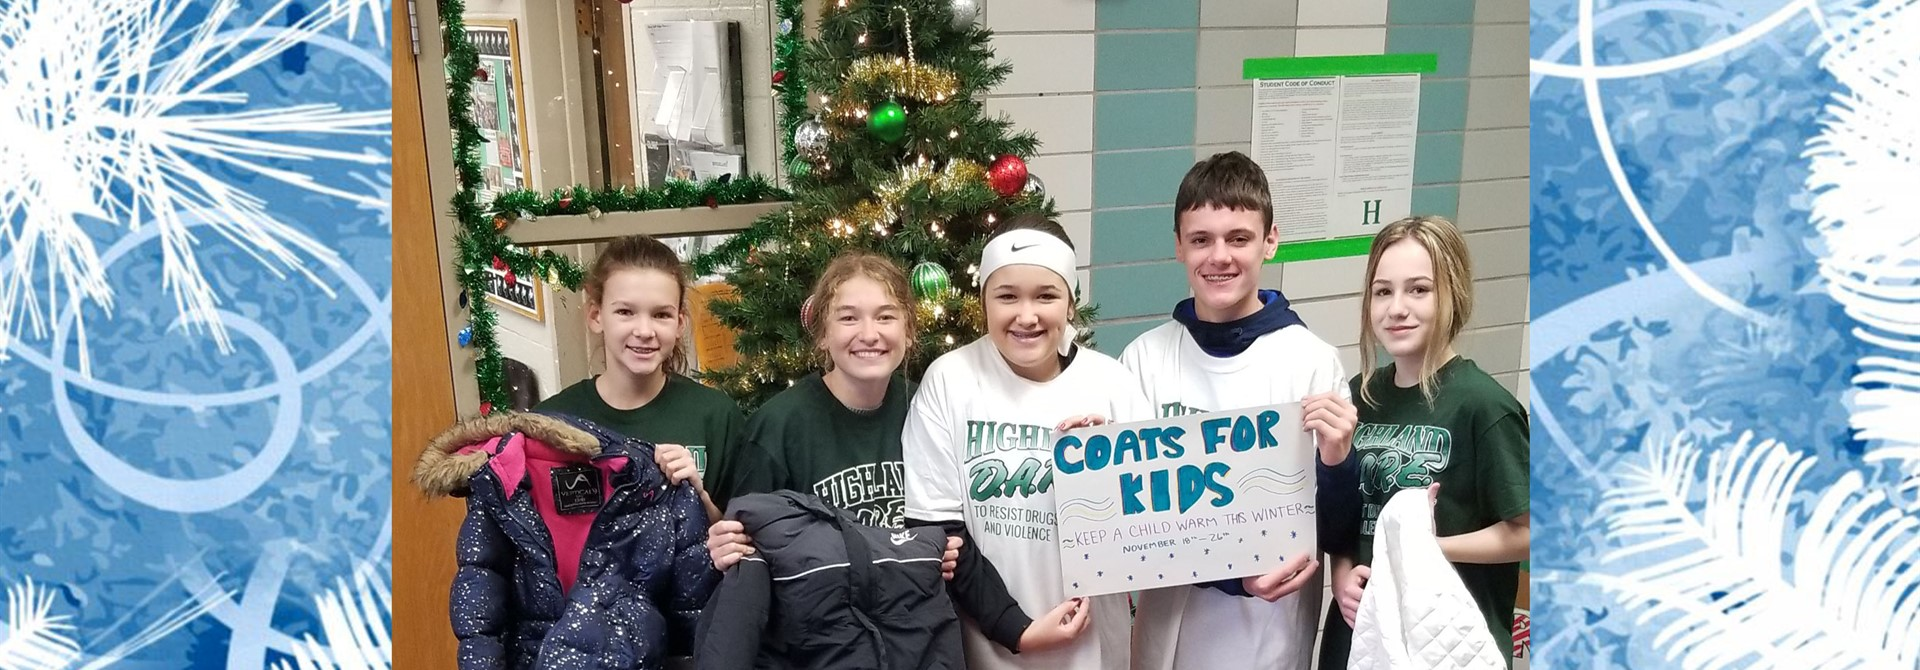 Annual 'Coats for Kids' Drive